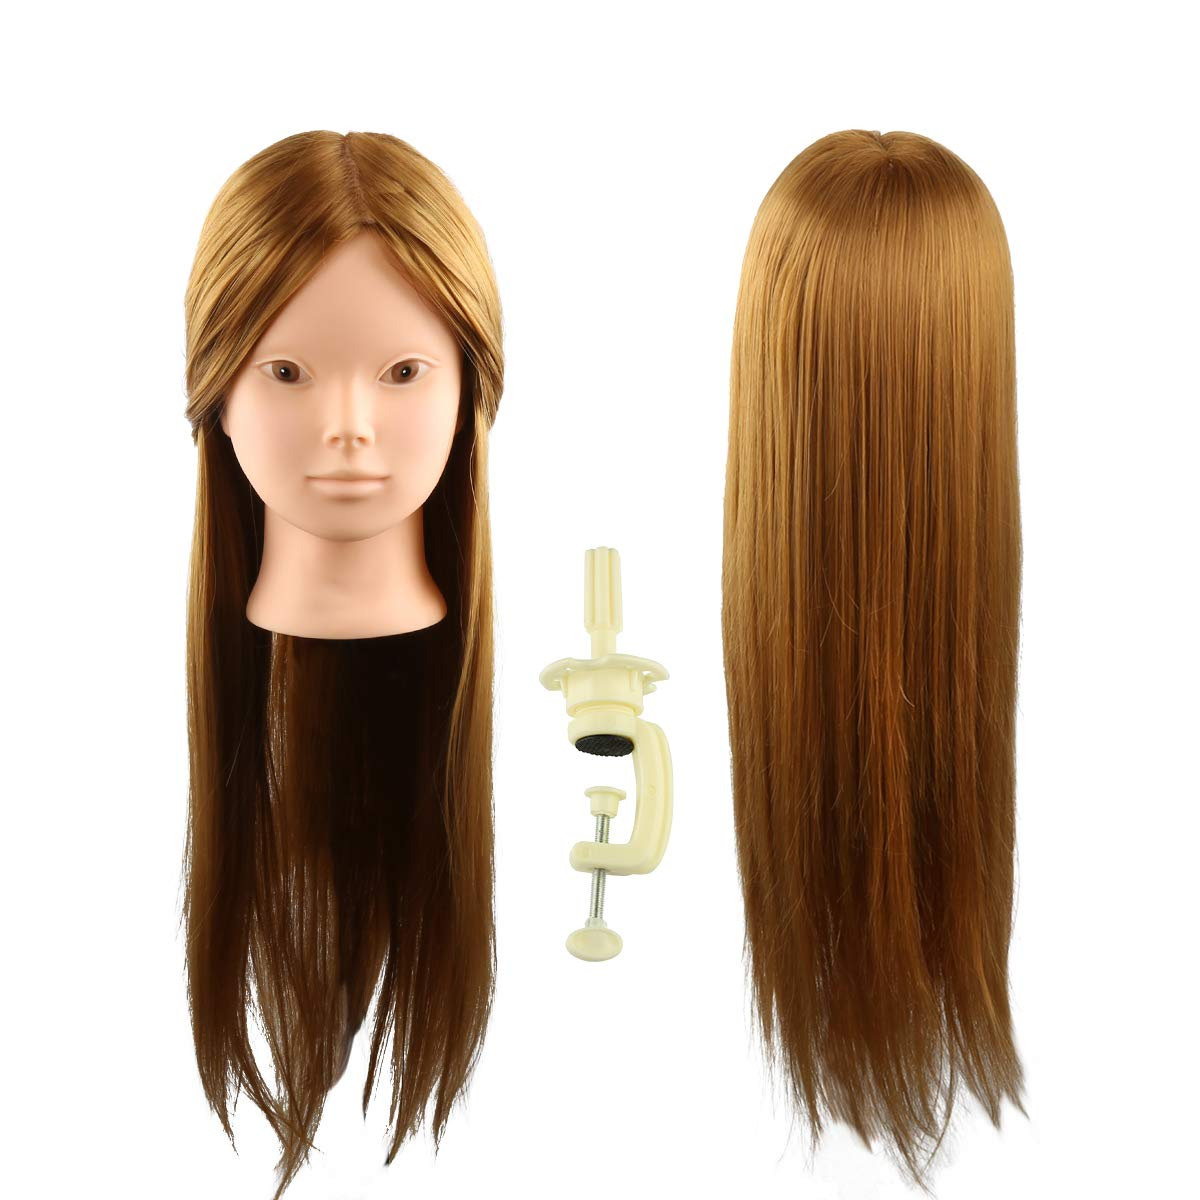 24 Head Mannequin for Makeup Face Painting Practice with 50% Real Human Hair, Cosmetology Hairdressing Training Braiding Doll Head Manikin Head with Free Table Clamp Stand (Brown) Coastacloud